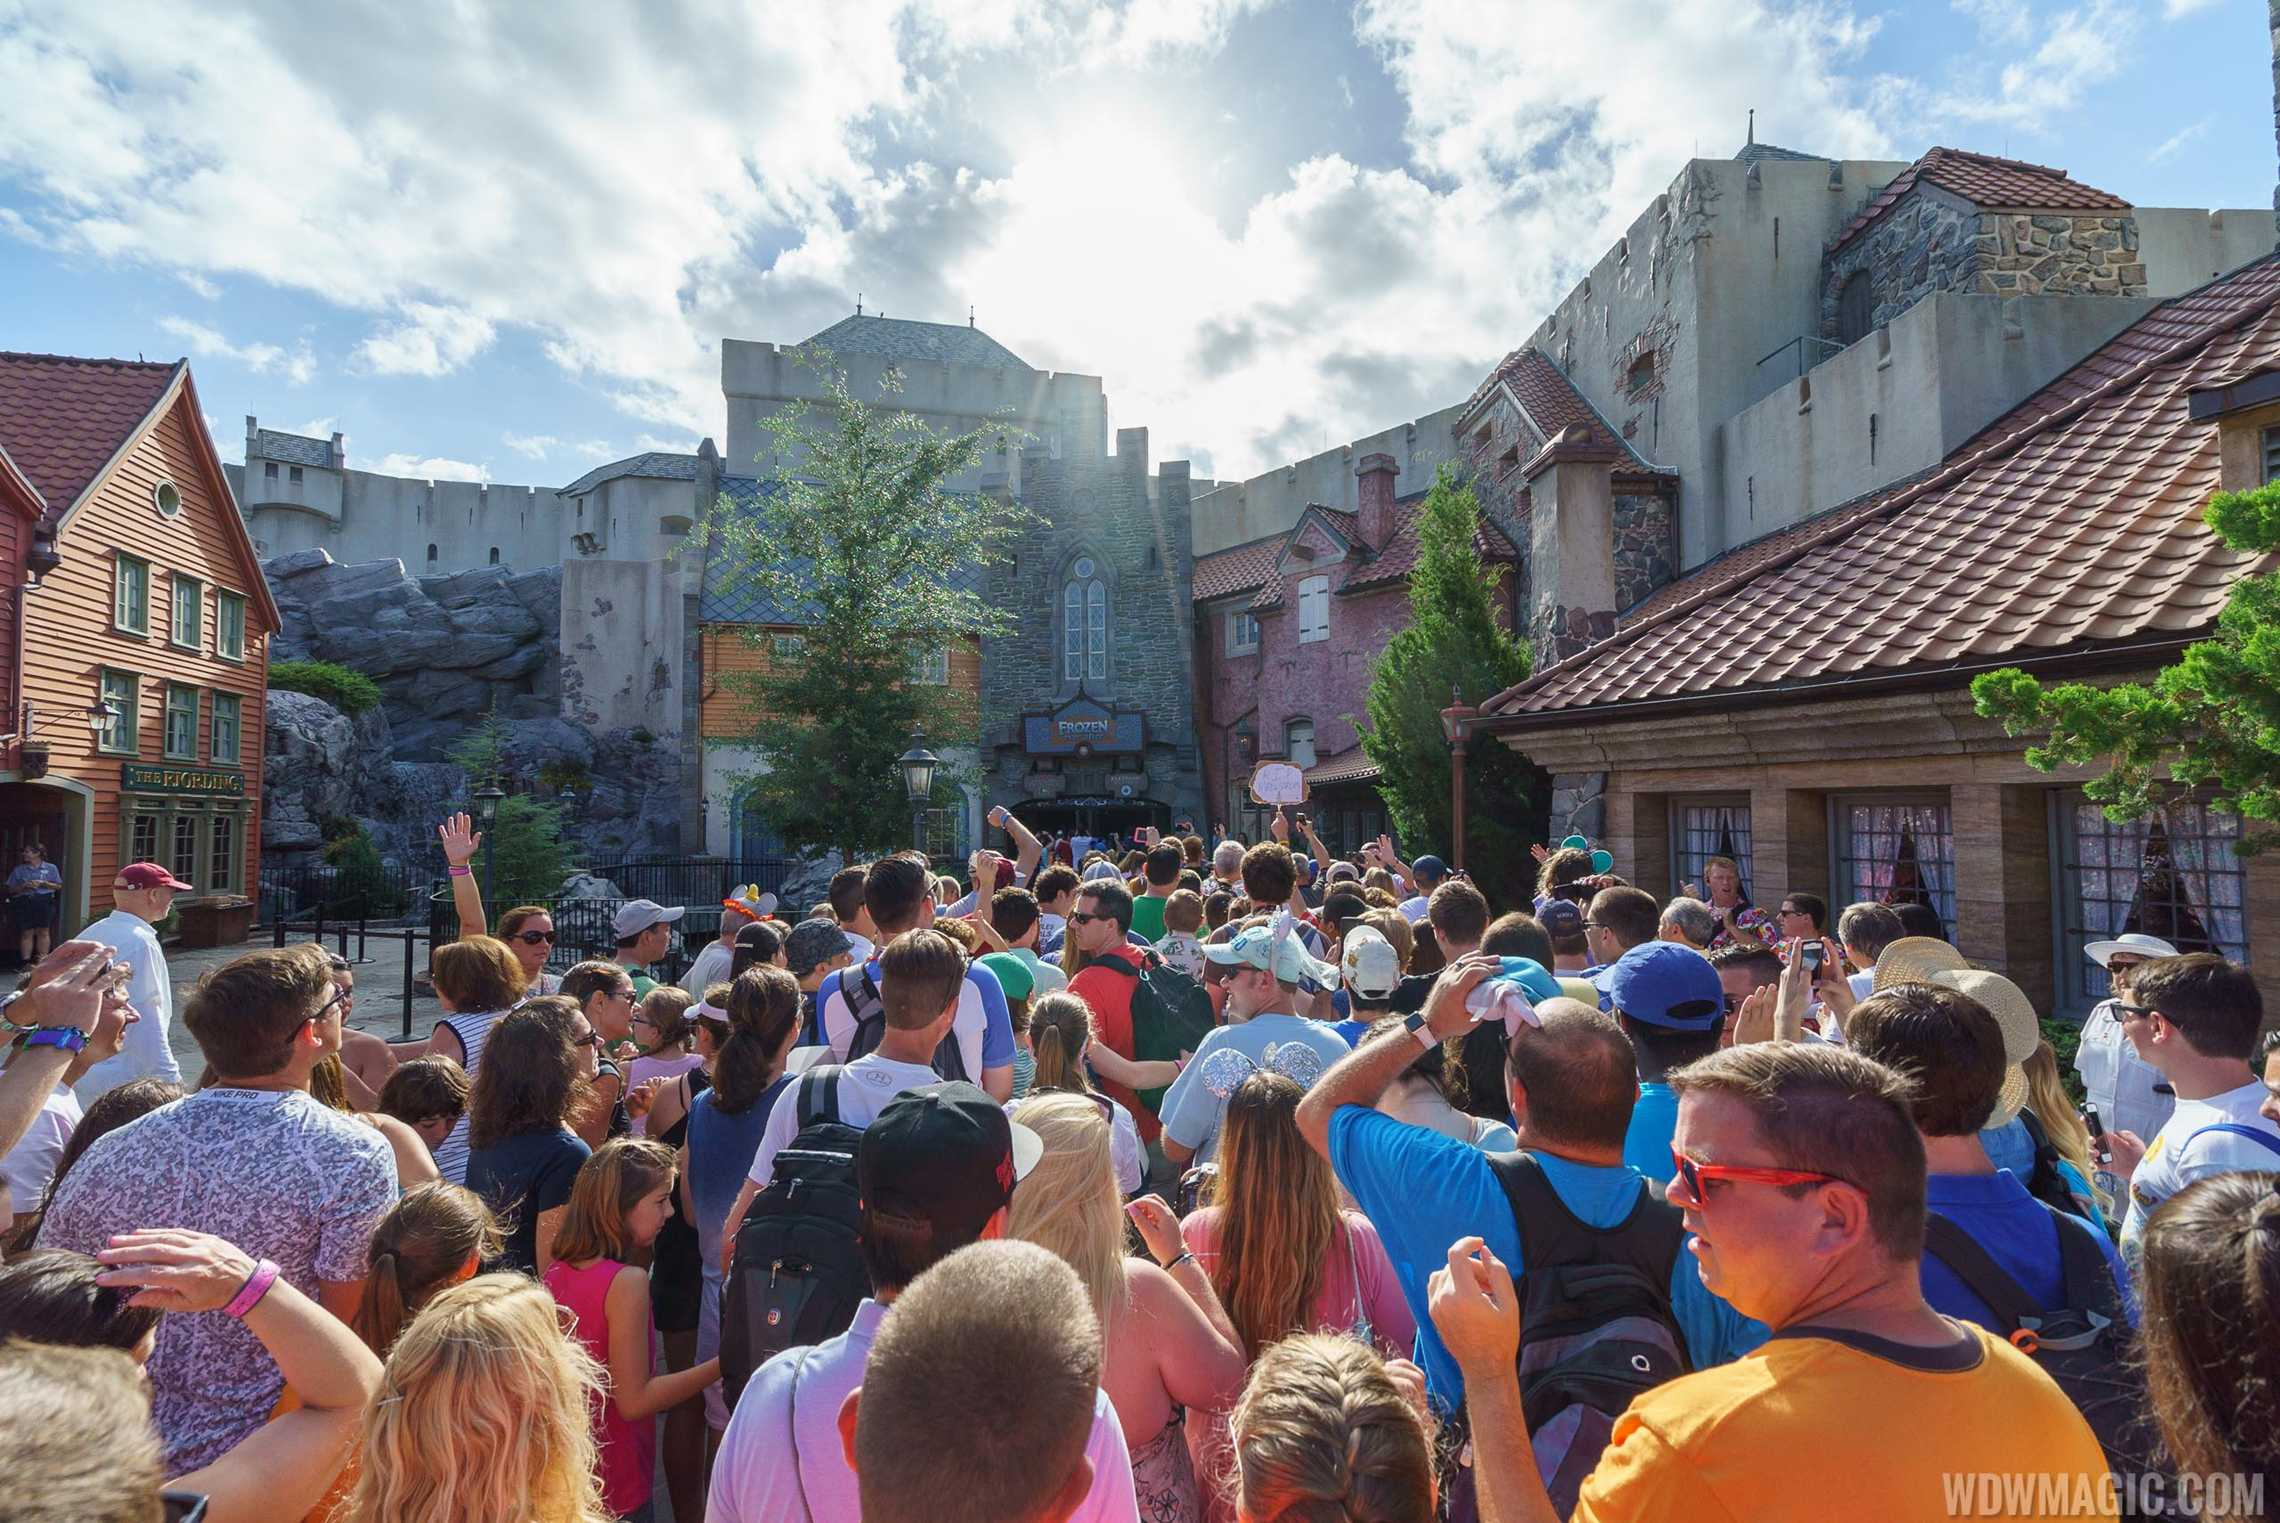 The opening of Frozen Ever After did not boost Epcot's guest numbers